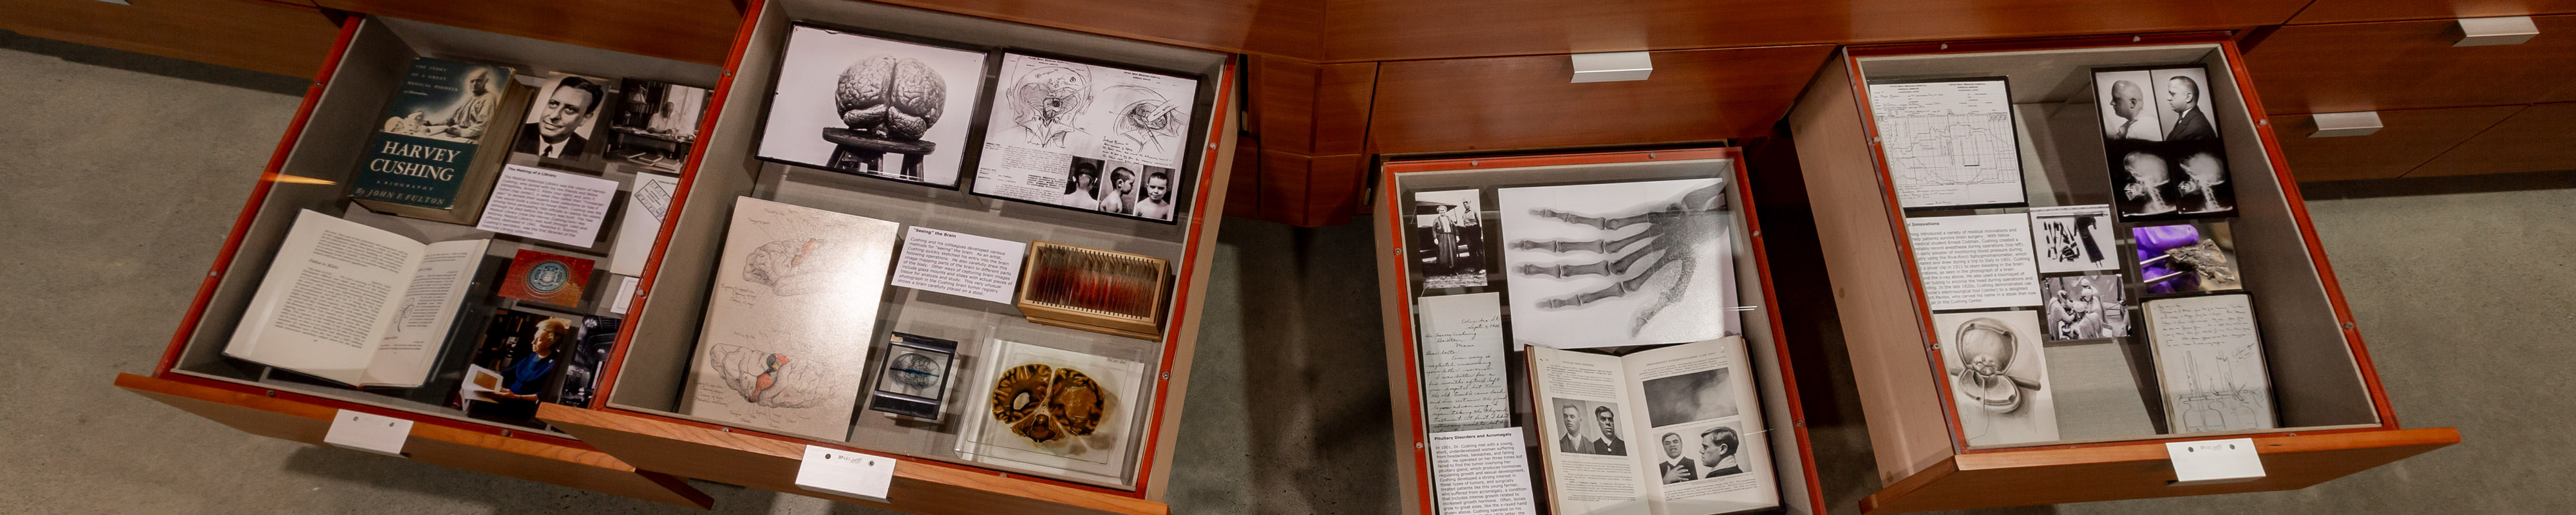 Discovery Drawers